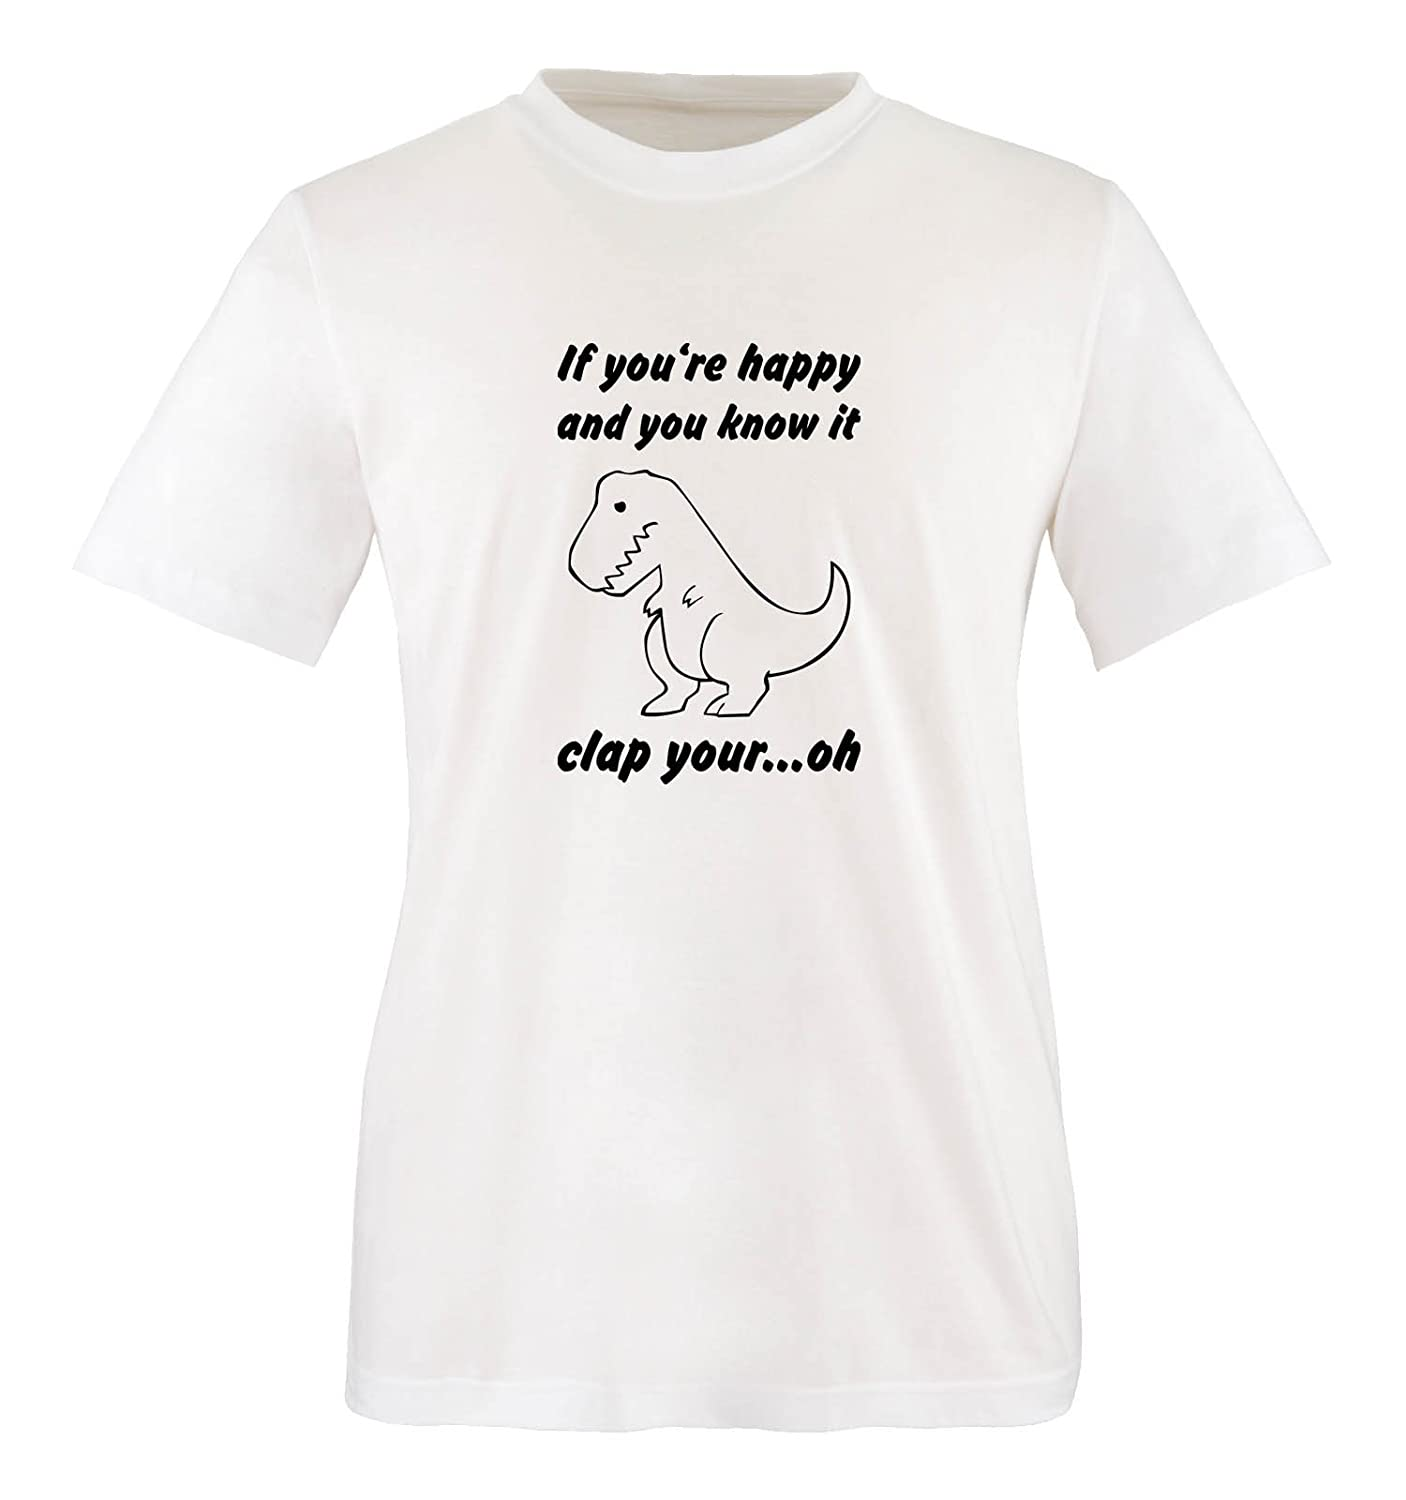 100/% Baumwolle If Youre Happy and You Know it clap Your oh Rundhals Kurzarm Top Basic Print-Shirt Comedy Shirts - Dino Herren T-Shirt